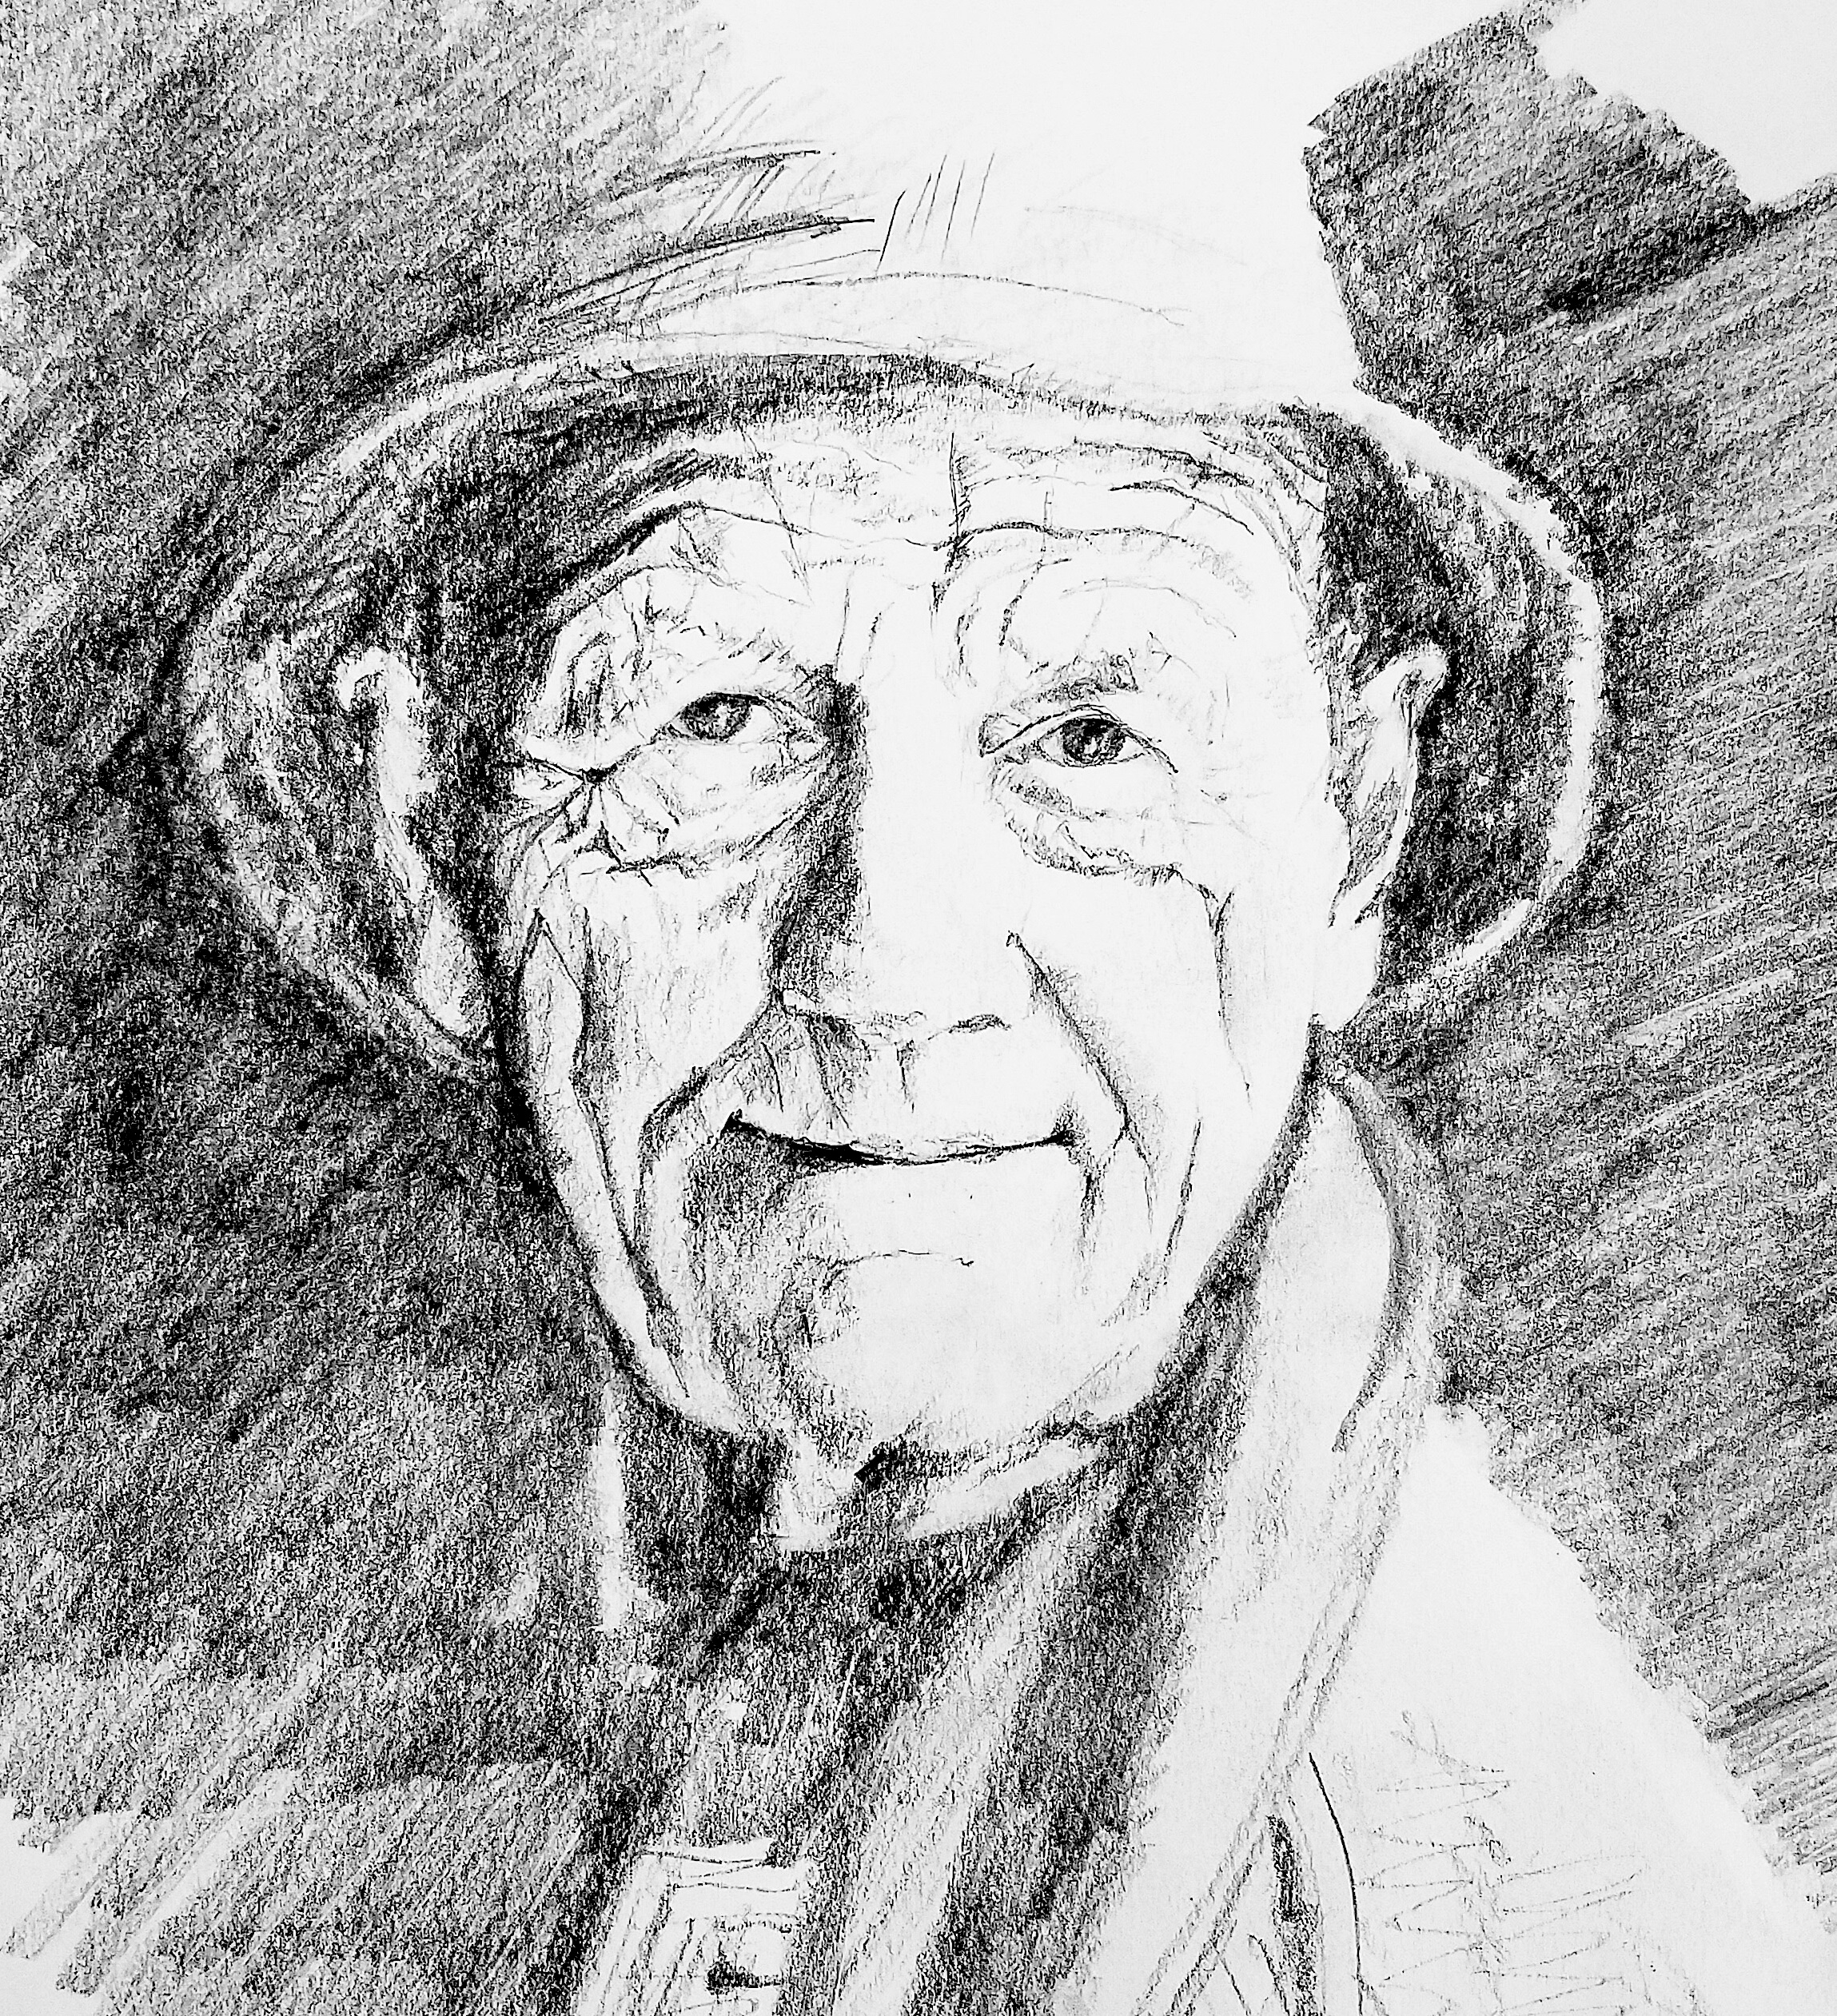 William Trevor, graphite, 2016